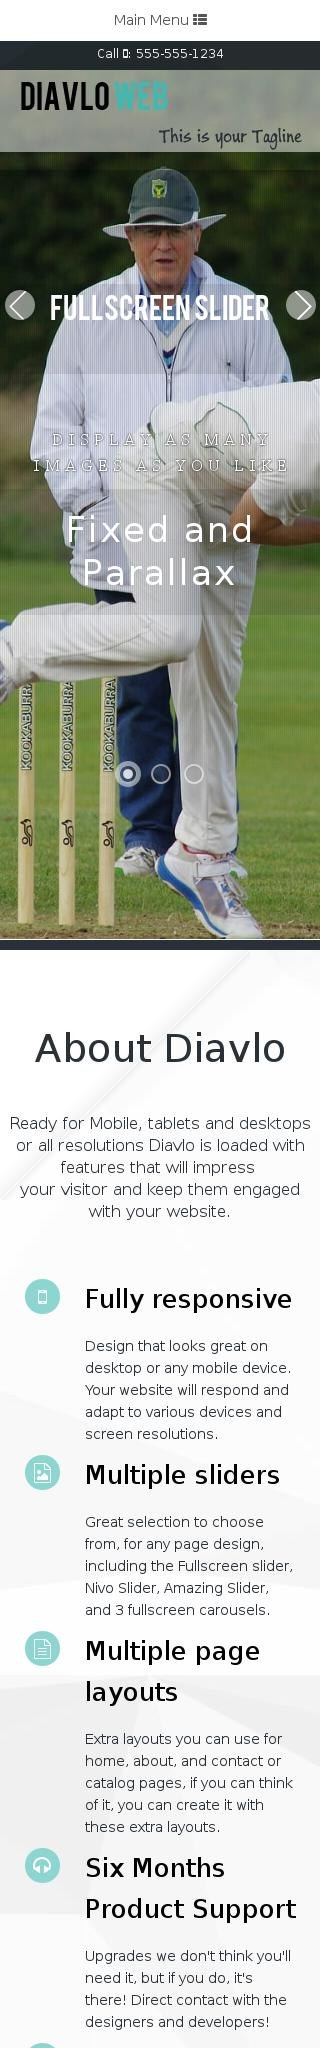 Mobile: Cricket Dreamweaver Template